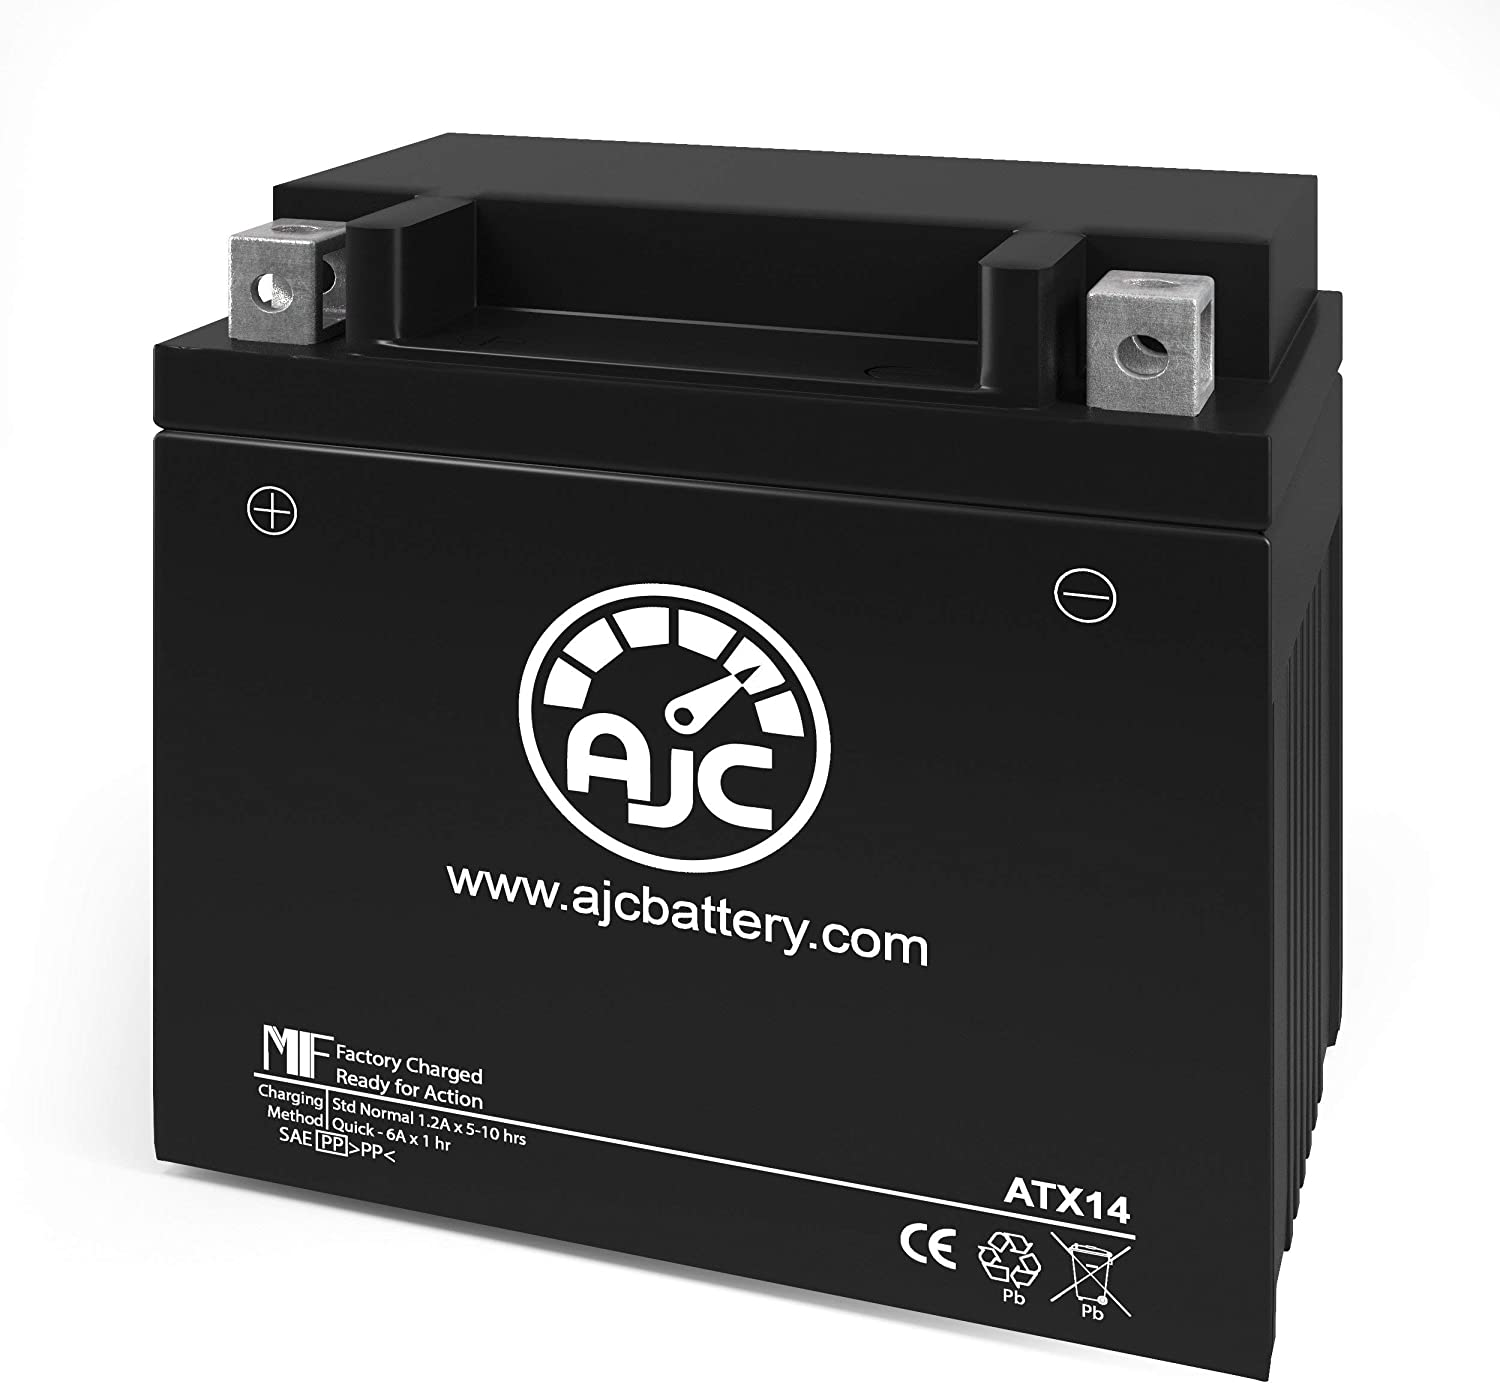 Piaggio BV500 500CC Scooter and Moped Replacement Battery - This is an AJC Brand Replacement